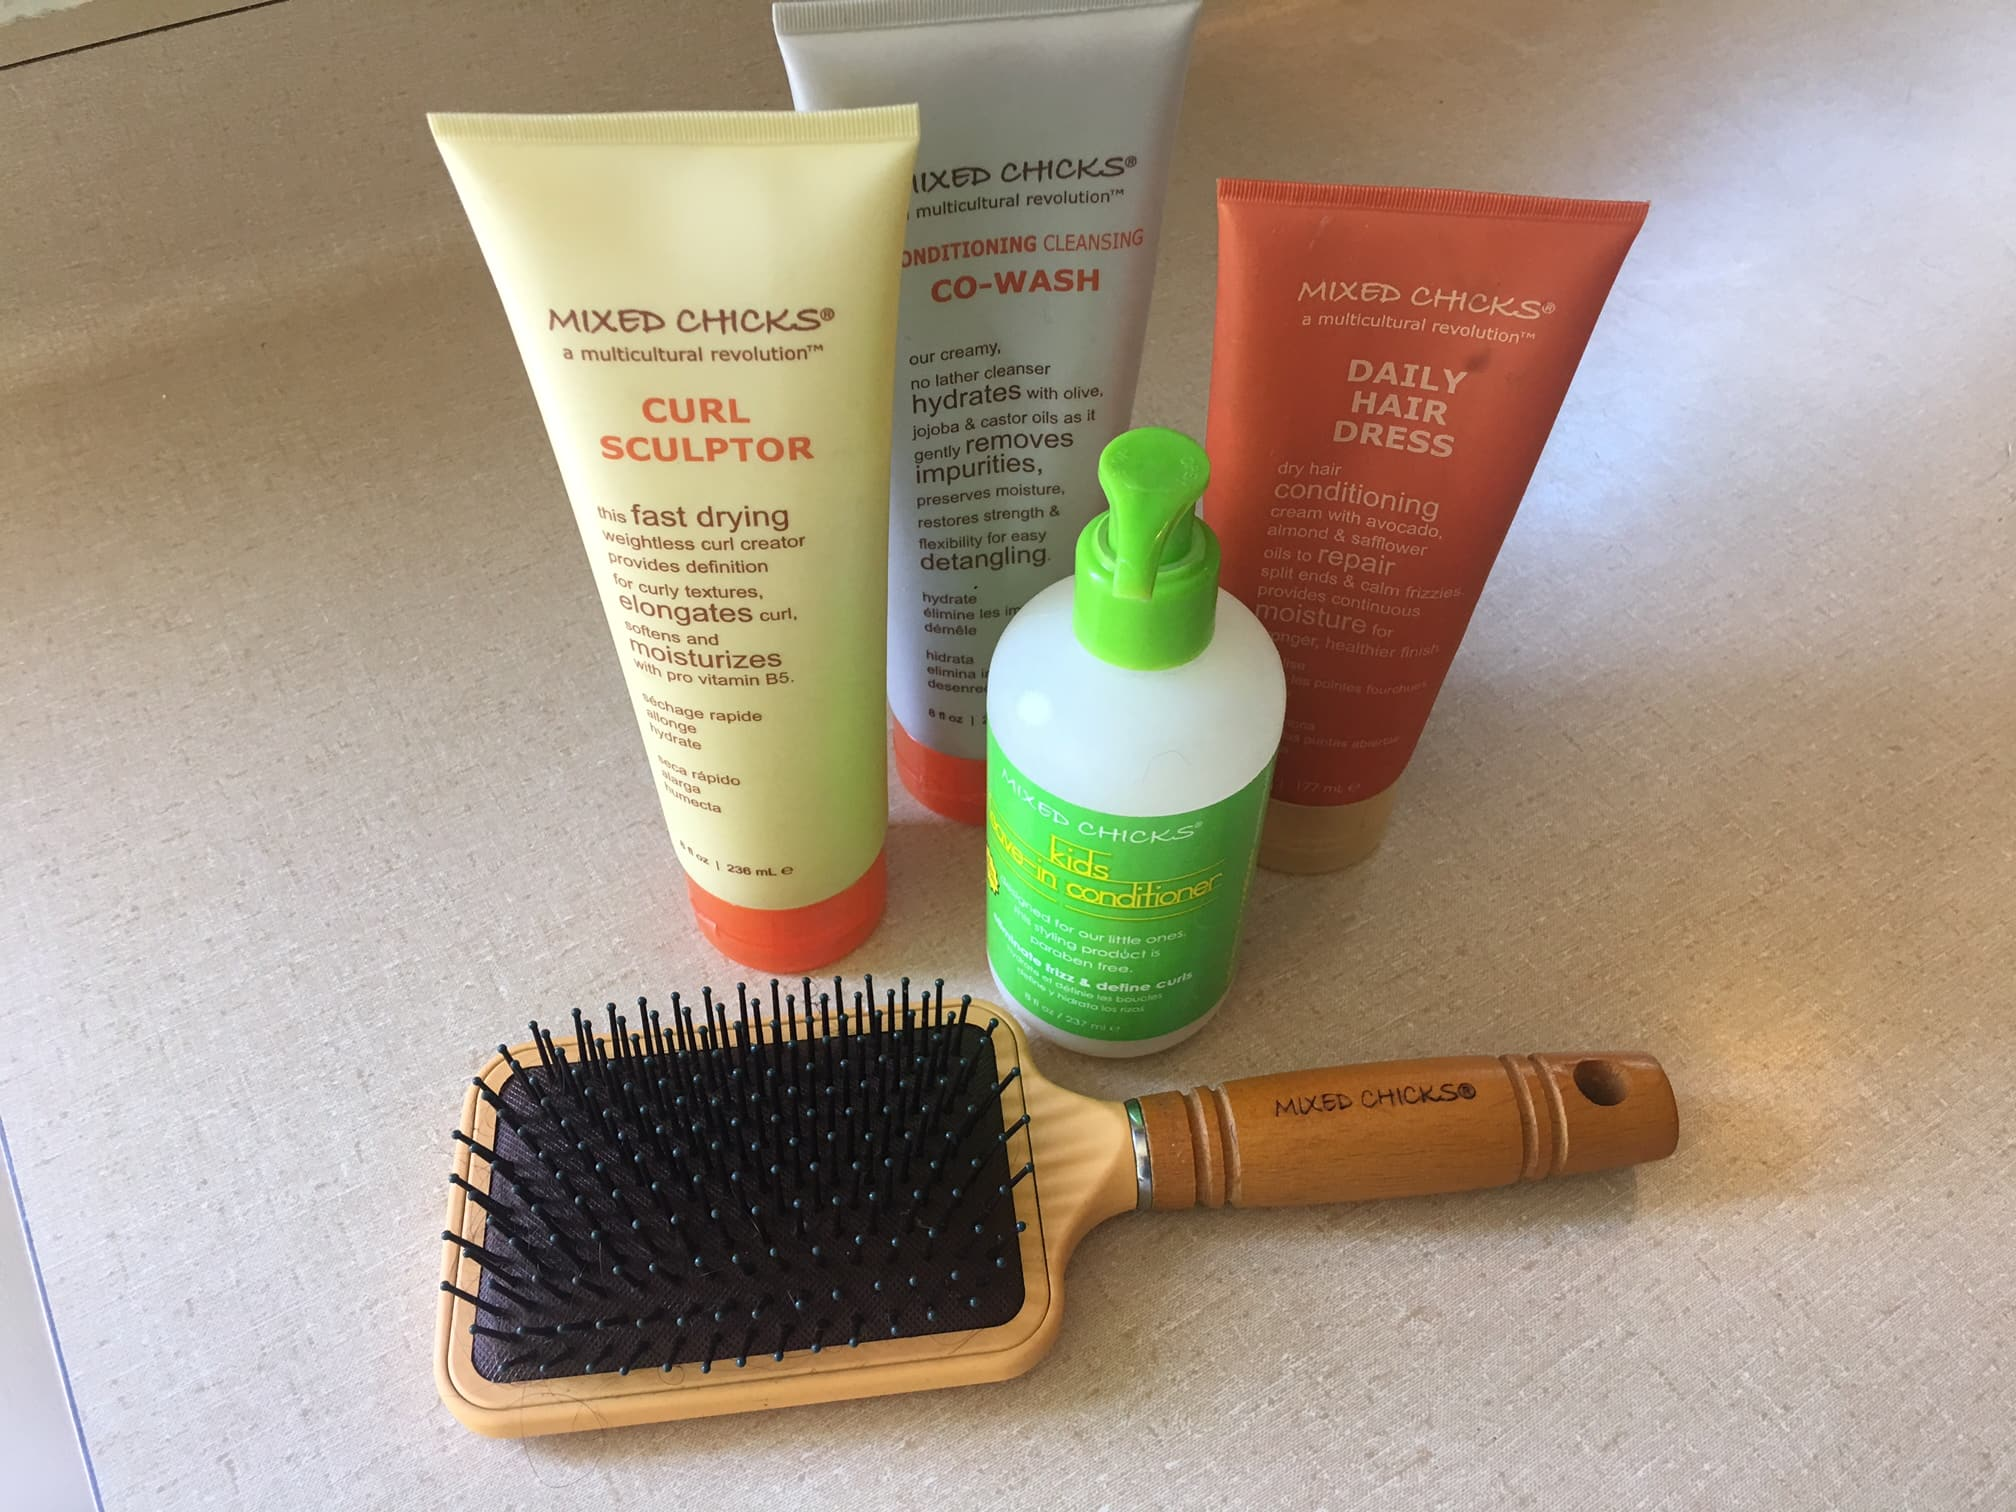 Mixed Chicks Hair Product Review